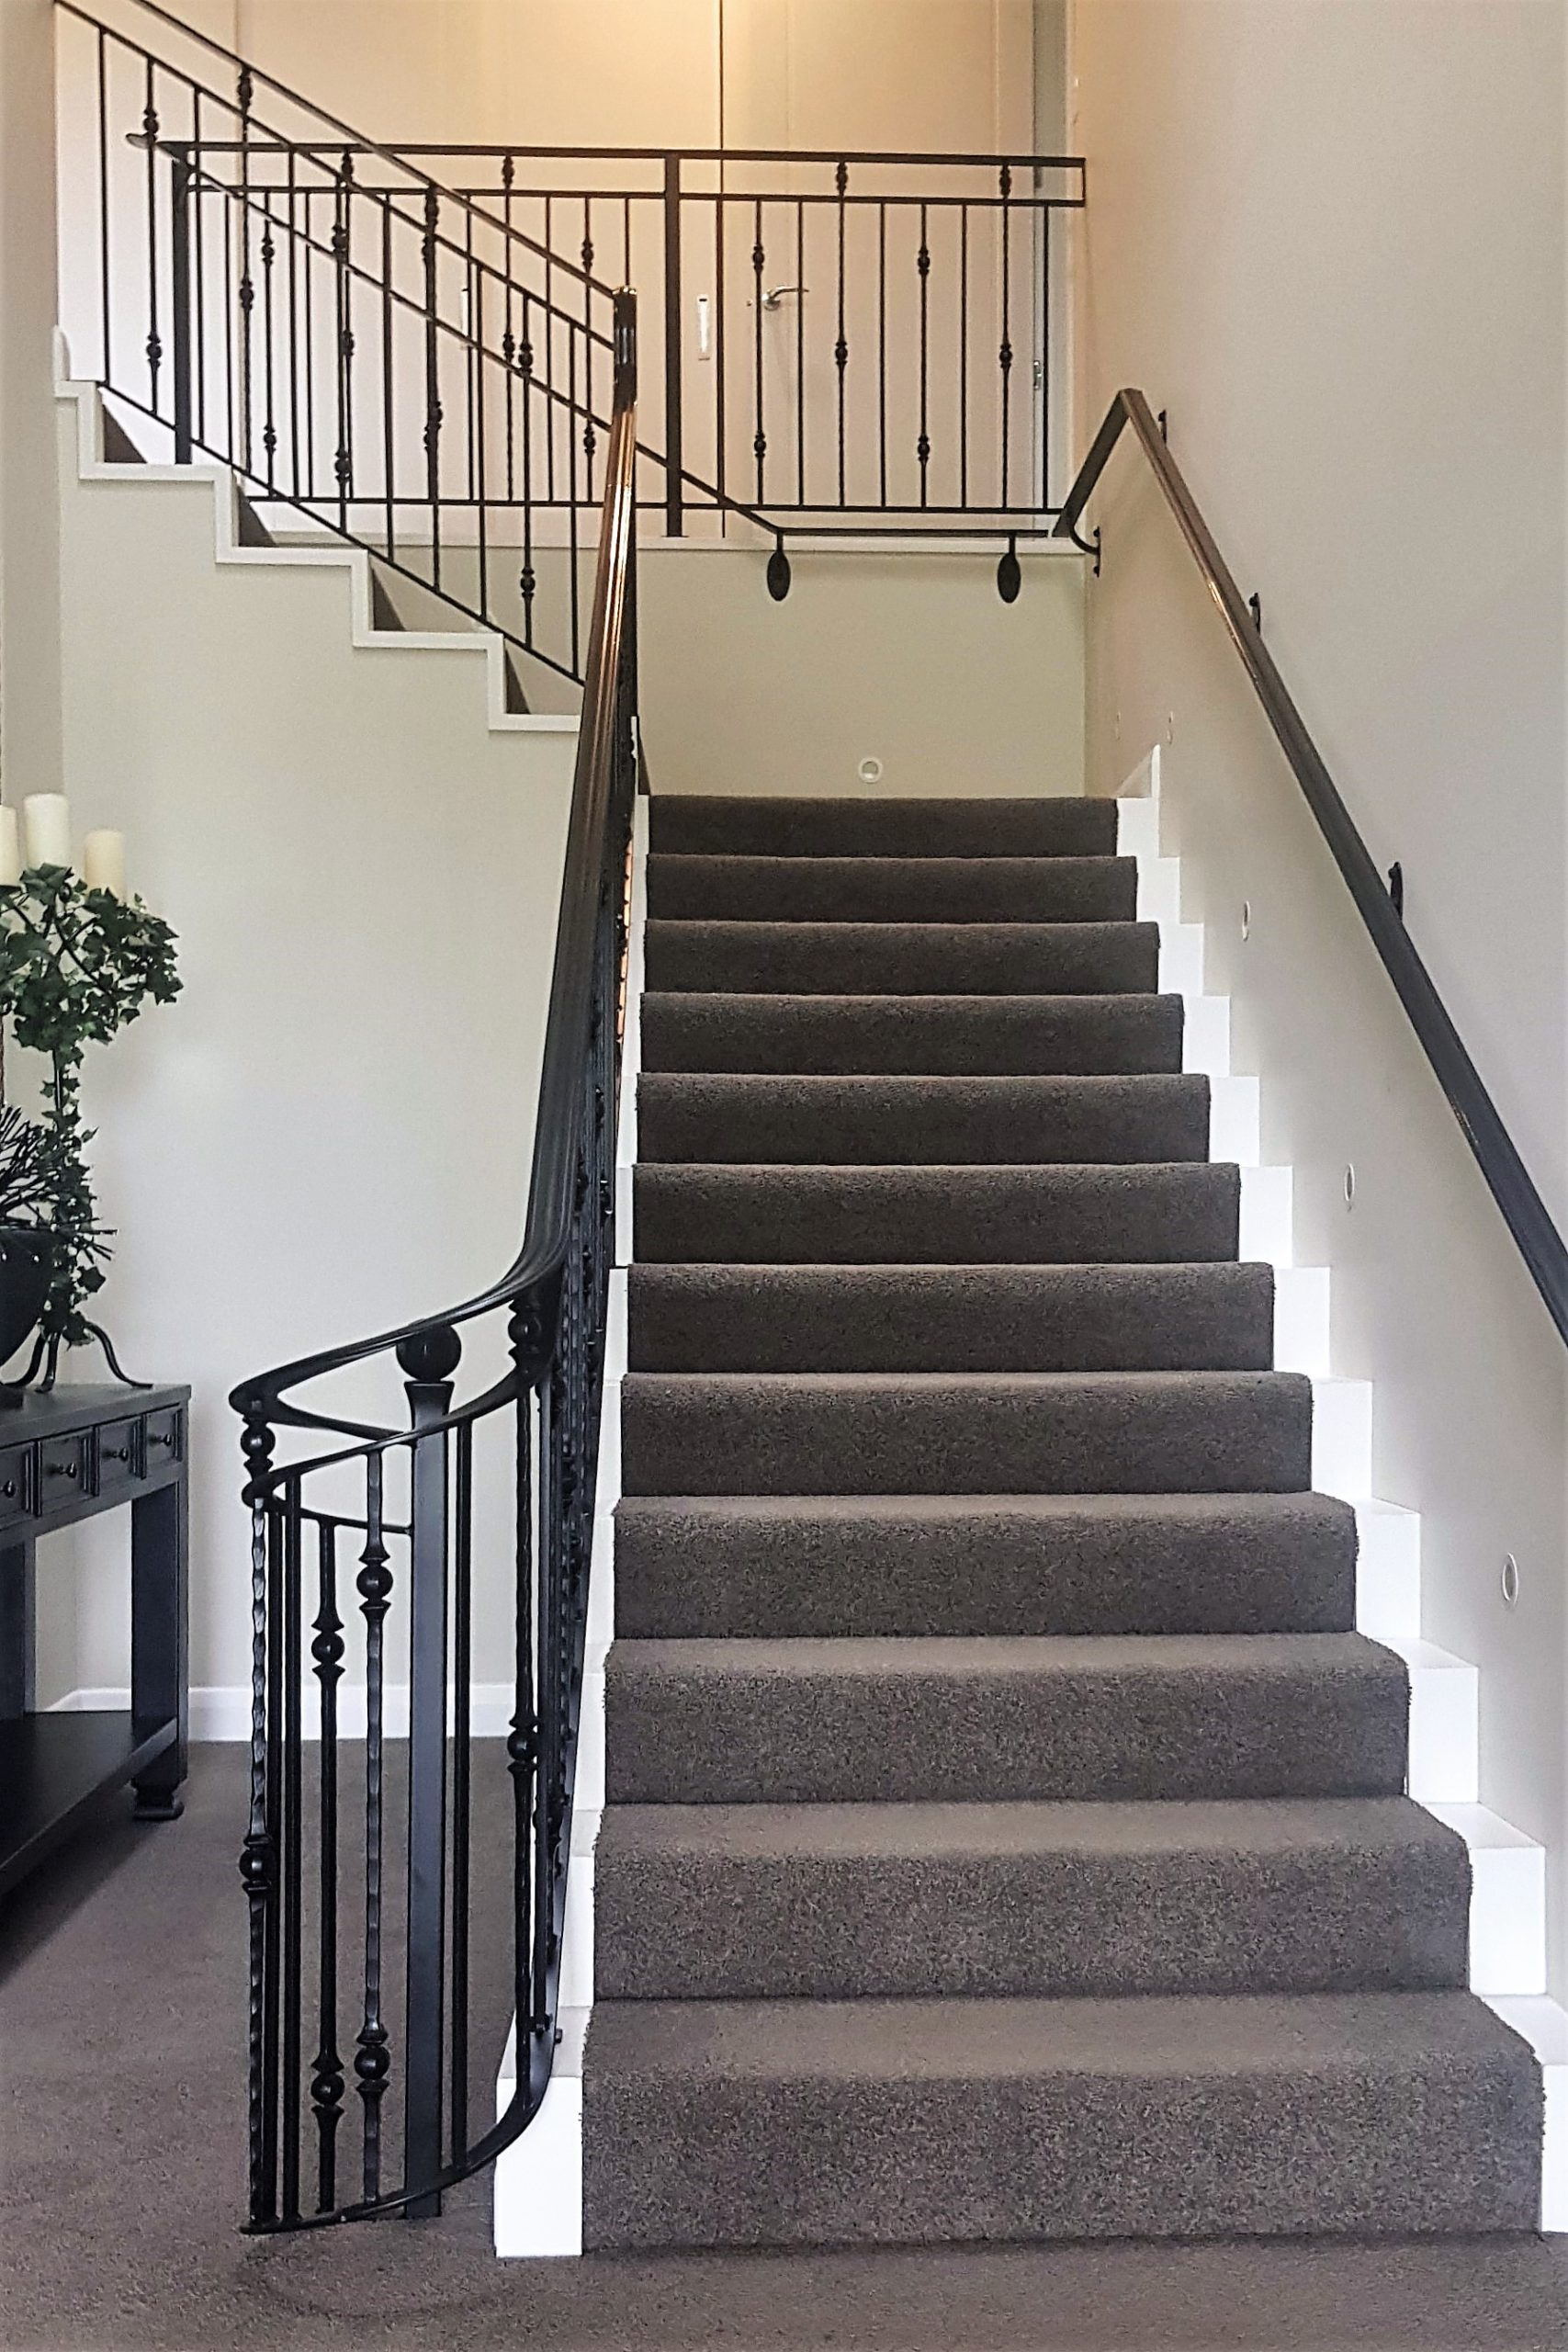 Top Flyte - Carpet Stairs